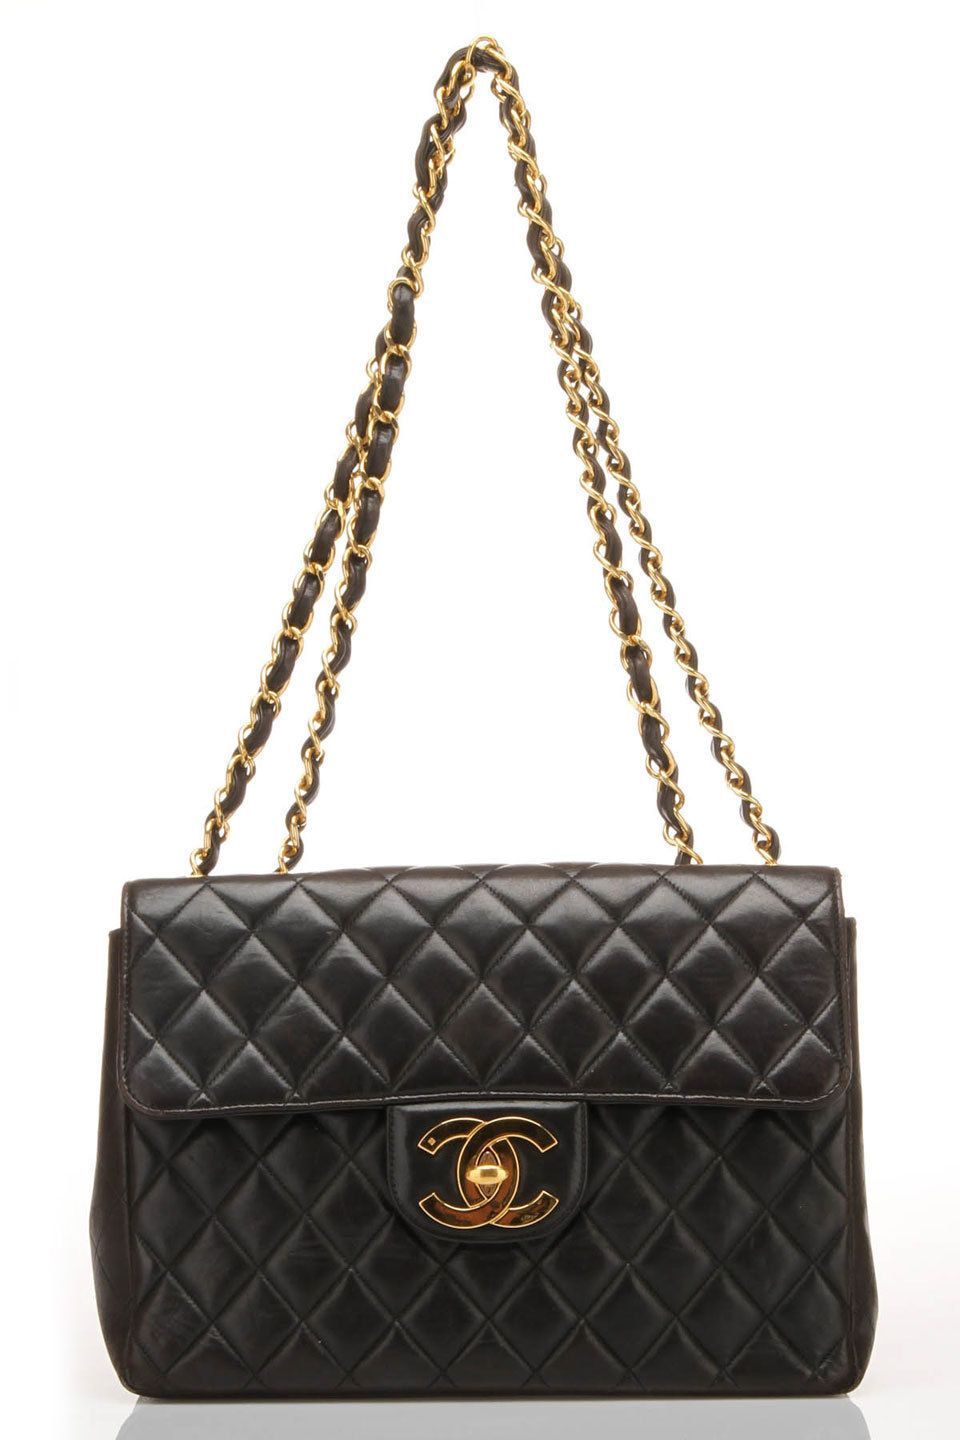 6a3d1d7440ef65 Chanel Matelasse Jumbo In Black - Um , yes! PLEASE!   Things that ...